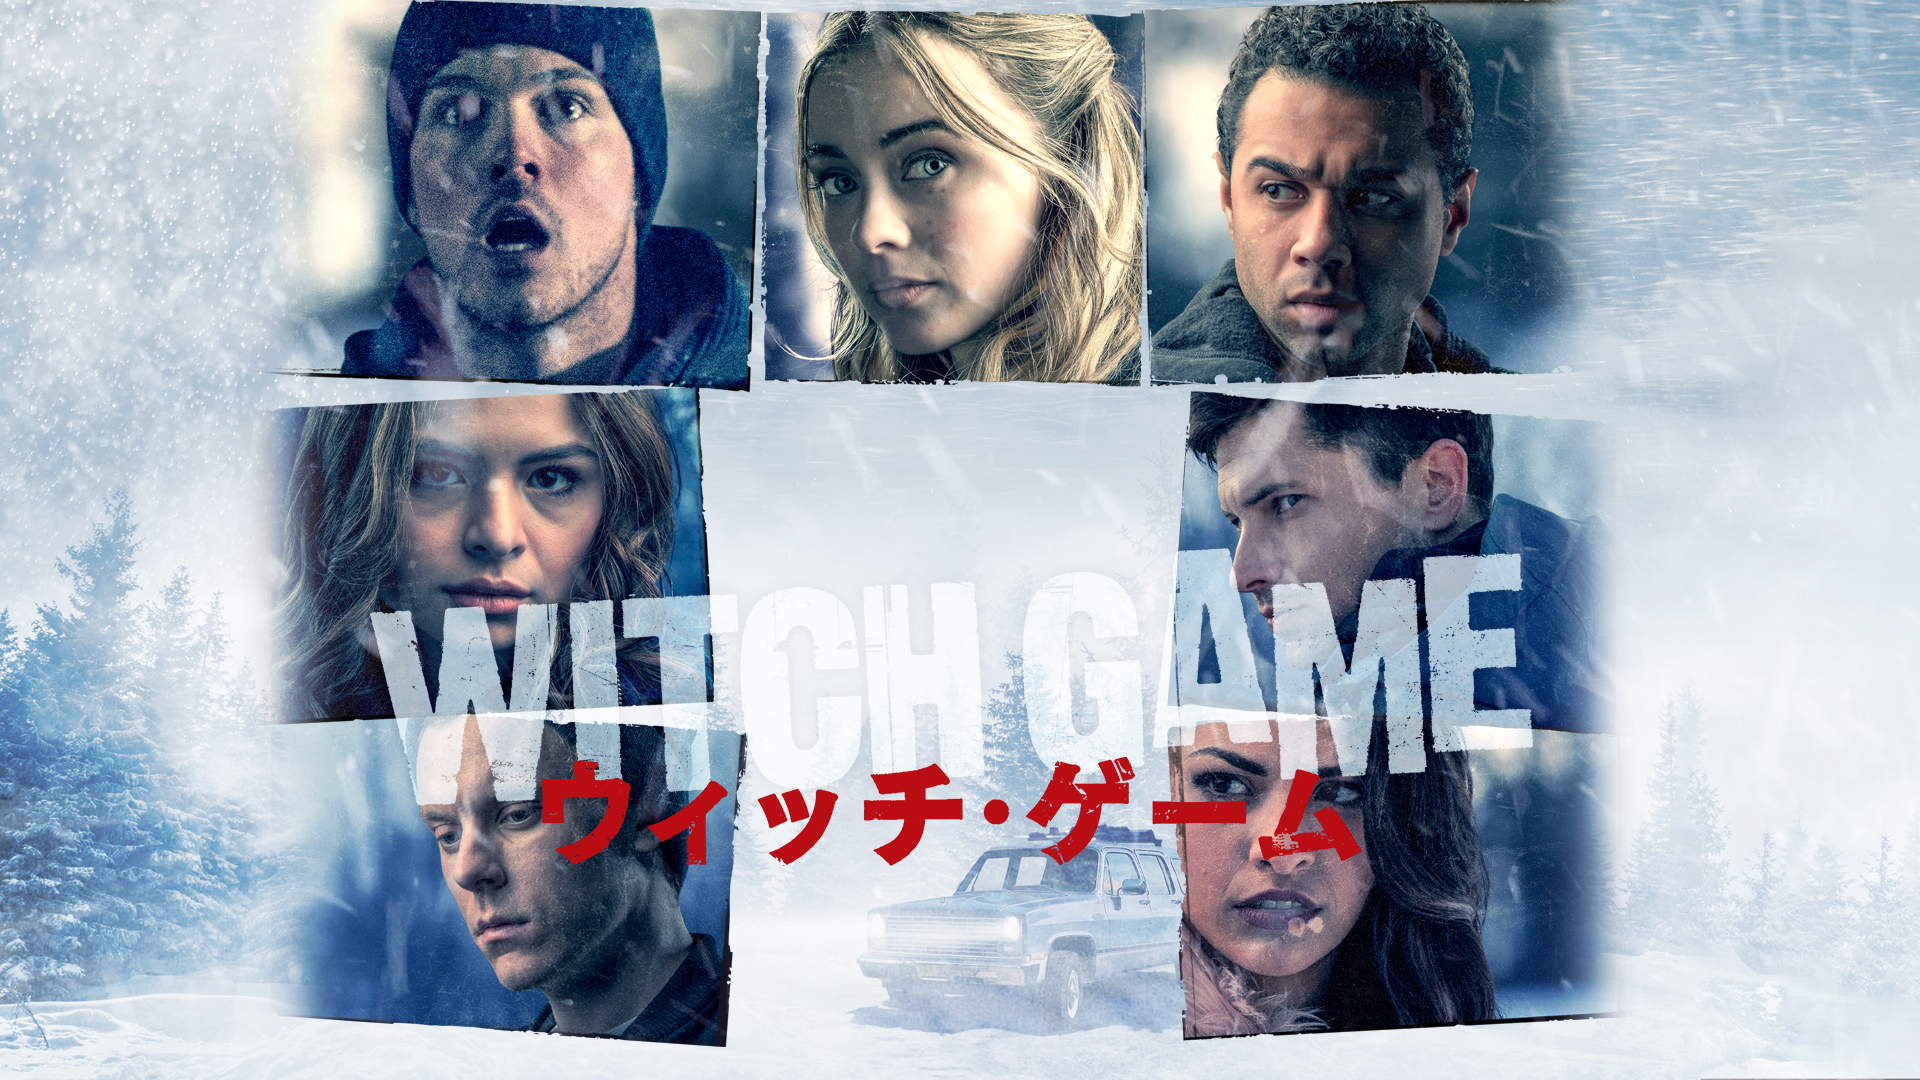 WITCH GAME/ウィッチ・ゲーム(字幕版)